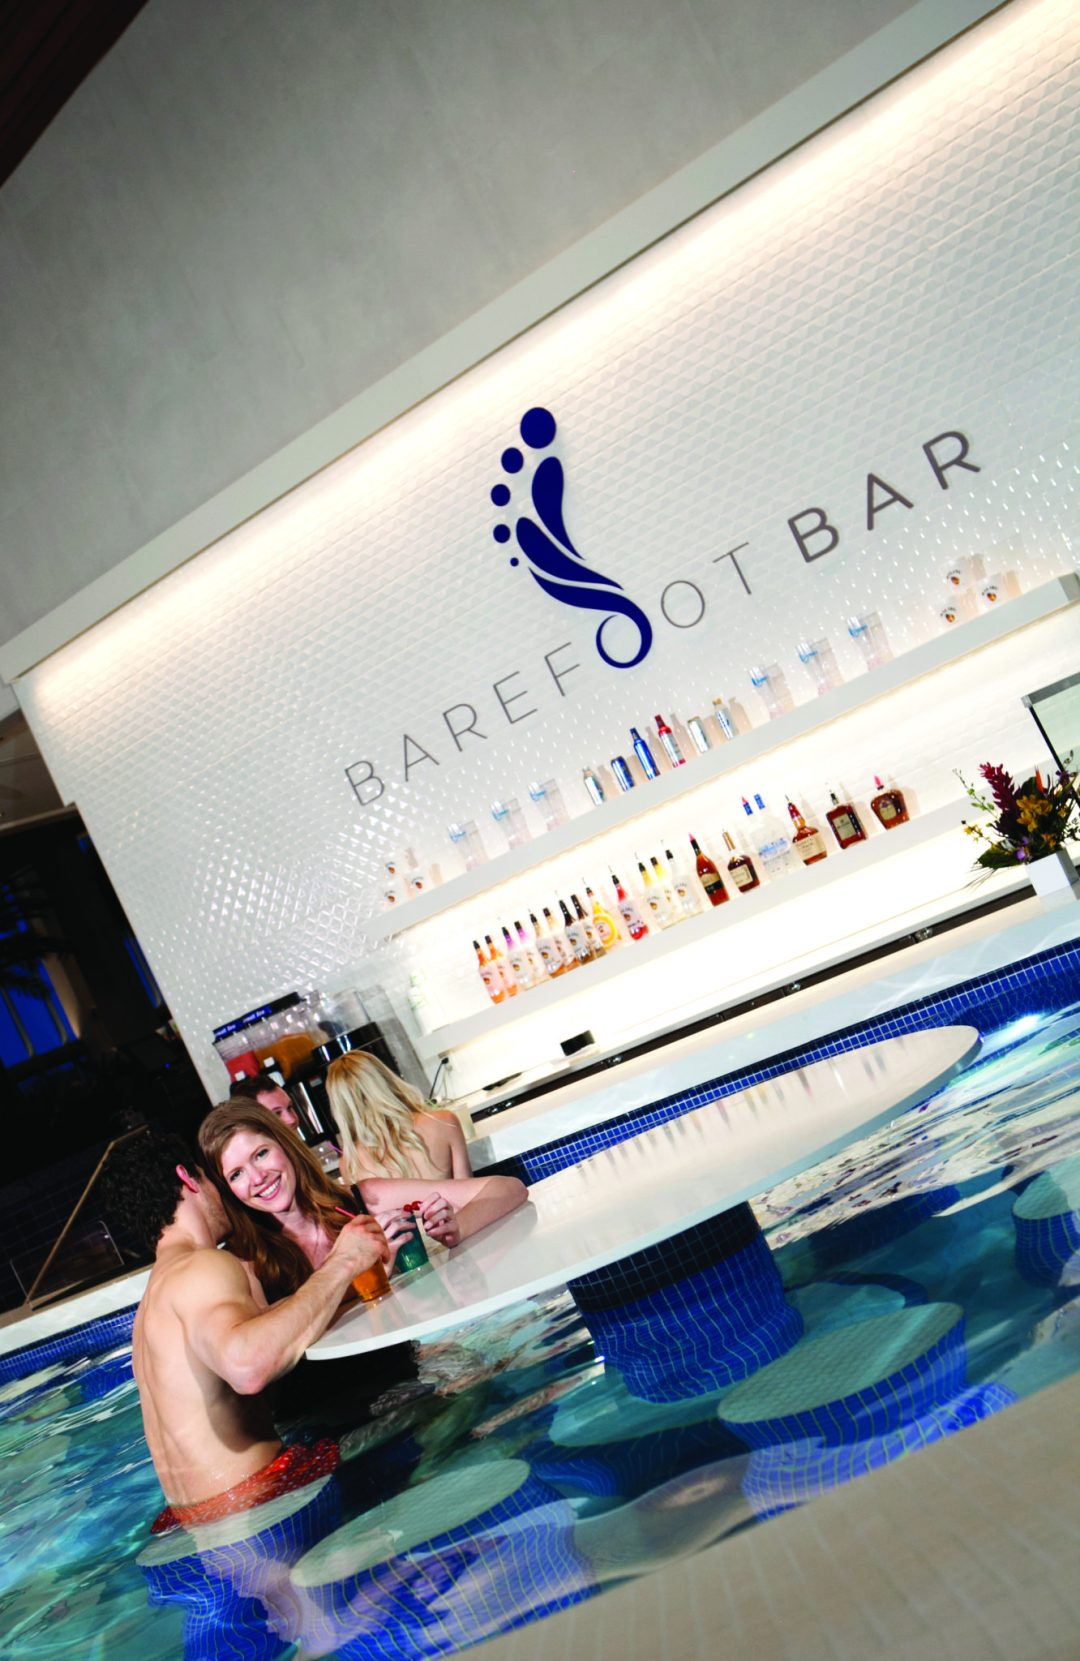 "Barefoot Bar. Image by <a href=""http://www.ticasino.com/"" target=""_blank"">Treasure Island</a>"